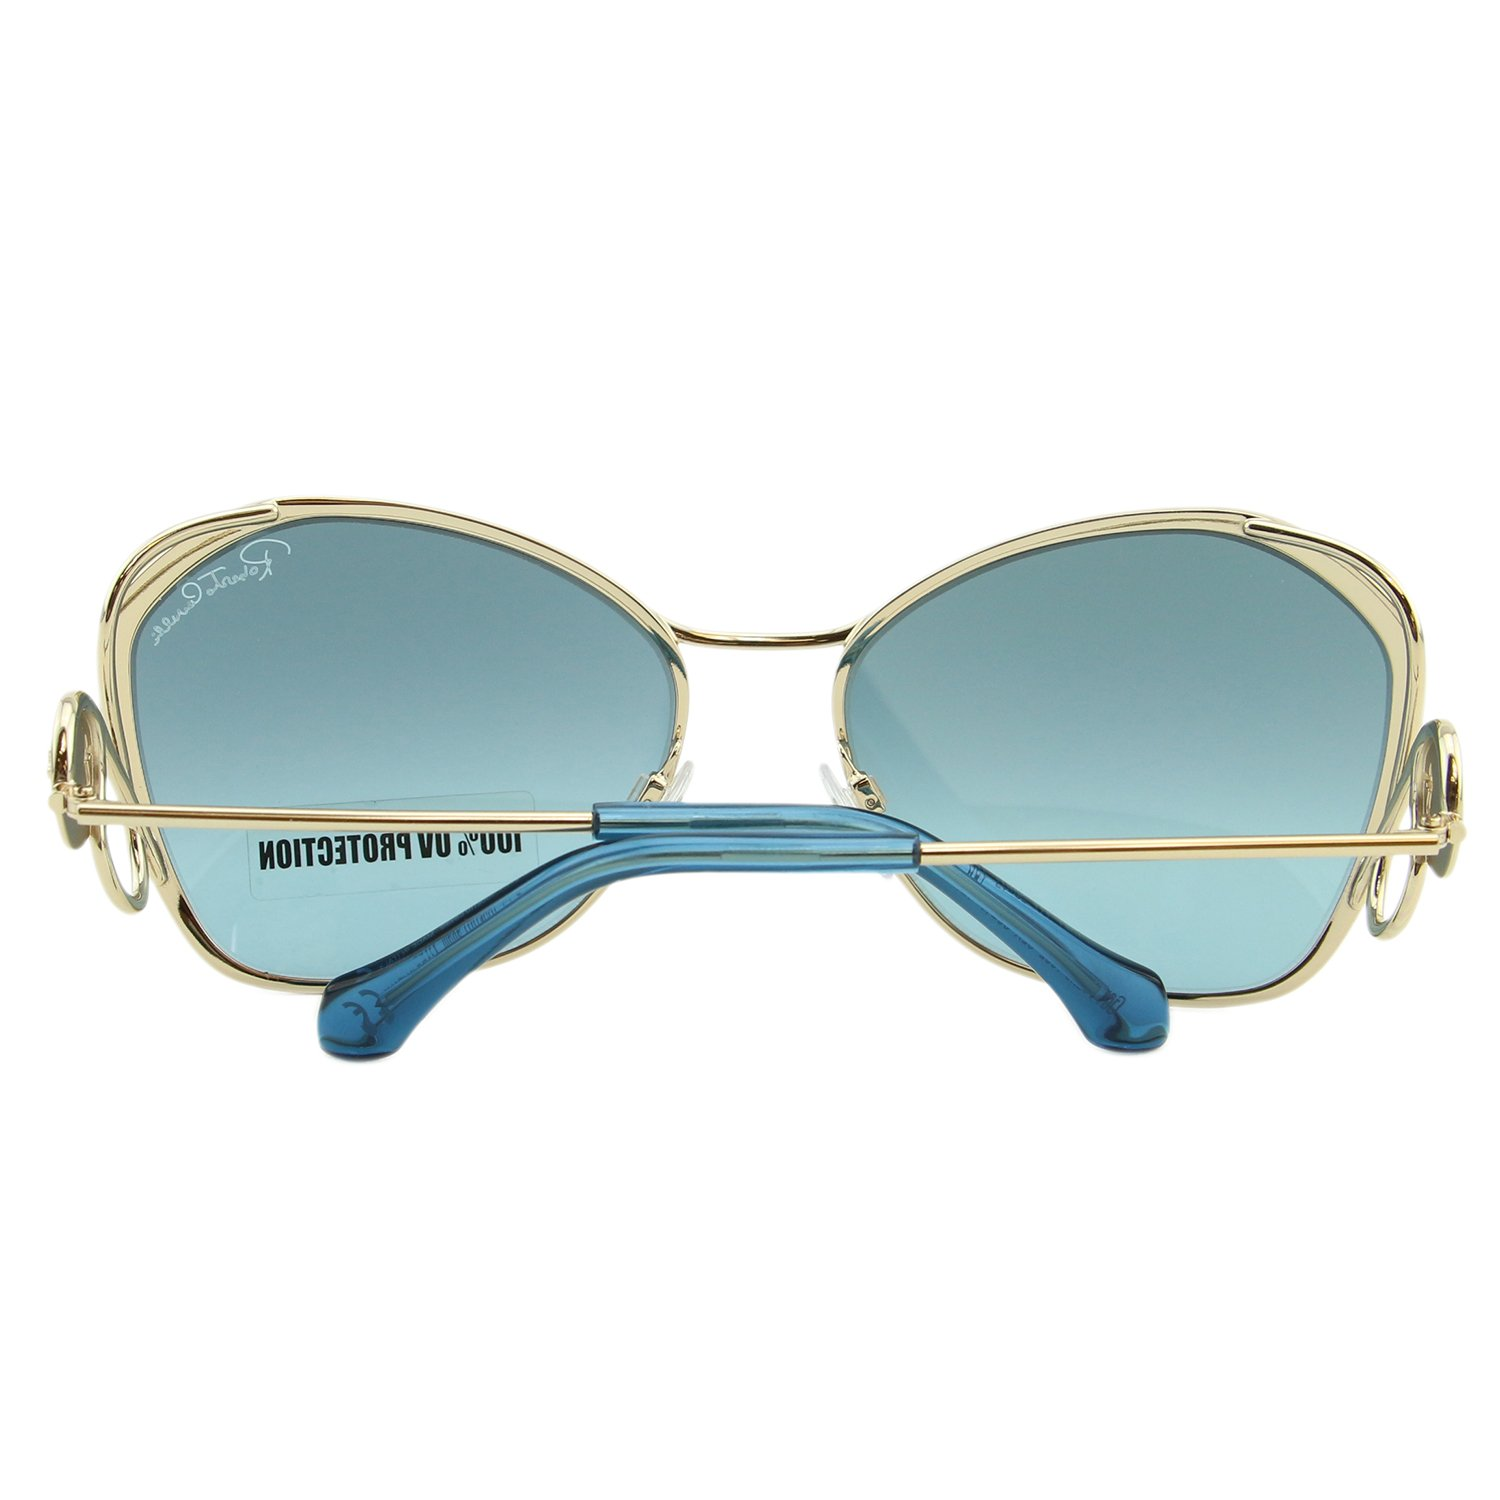 a1f2a1f49c 2018 Roberto Cavalli Gavorrano RC-1062 32X Women Gold Butterfly Mirrored  Sunglasses